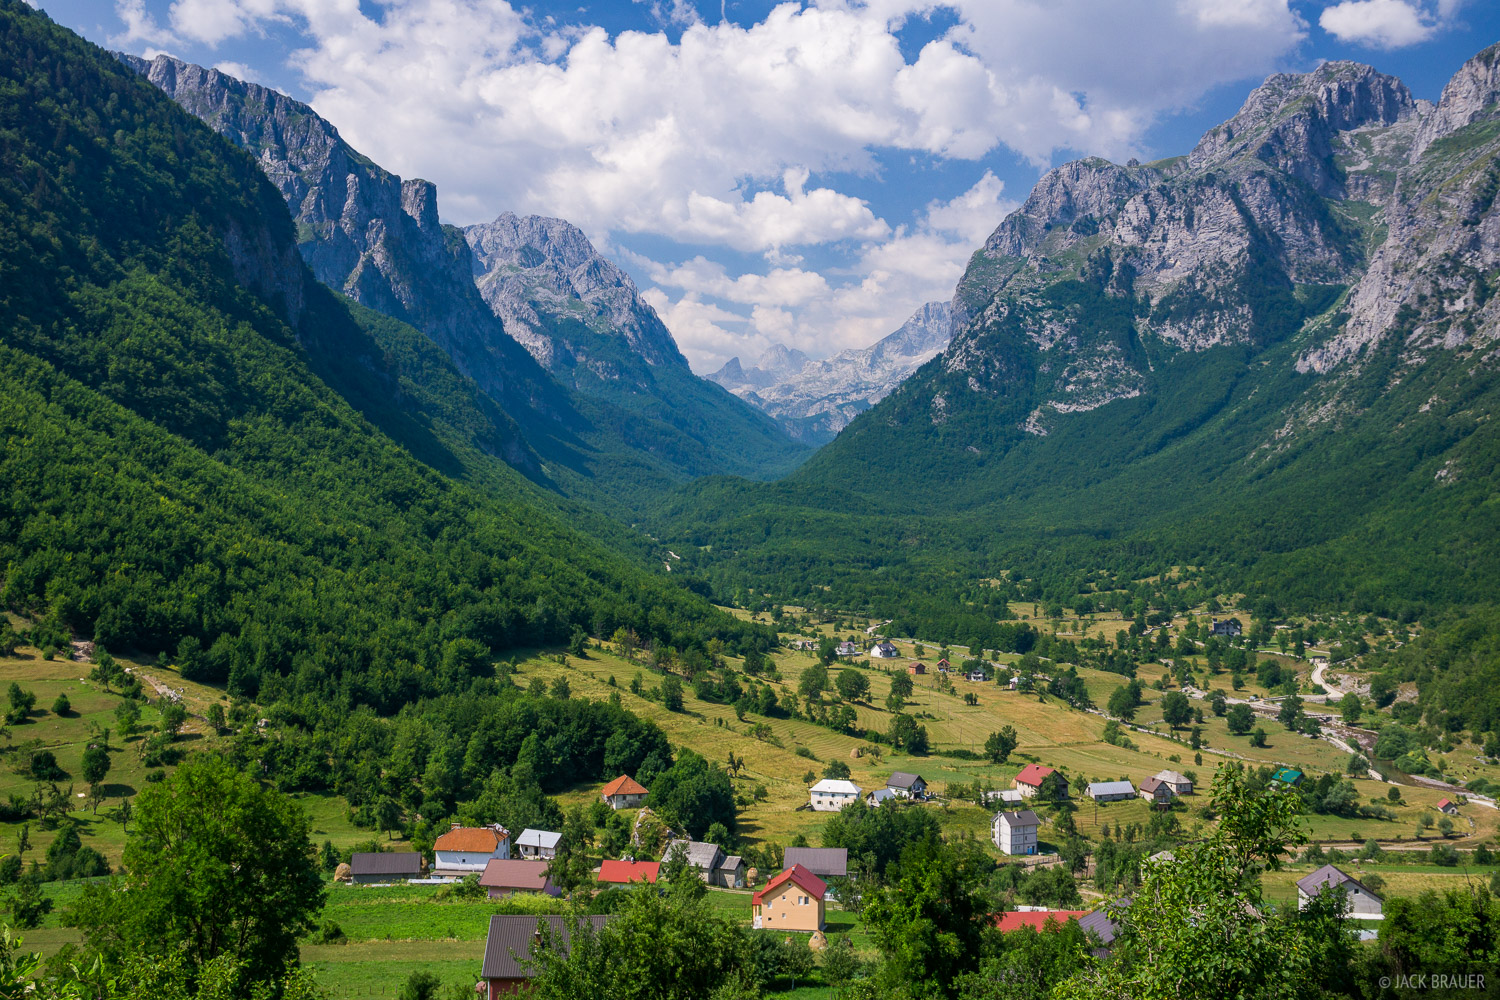 The village of Vusanje in the spectacular Ropojana Valley near Gusinje, Montenegro.